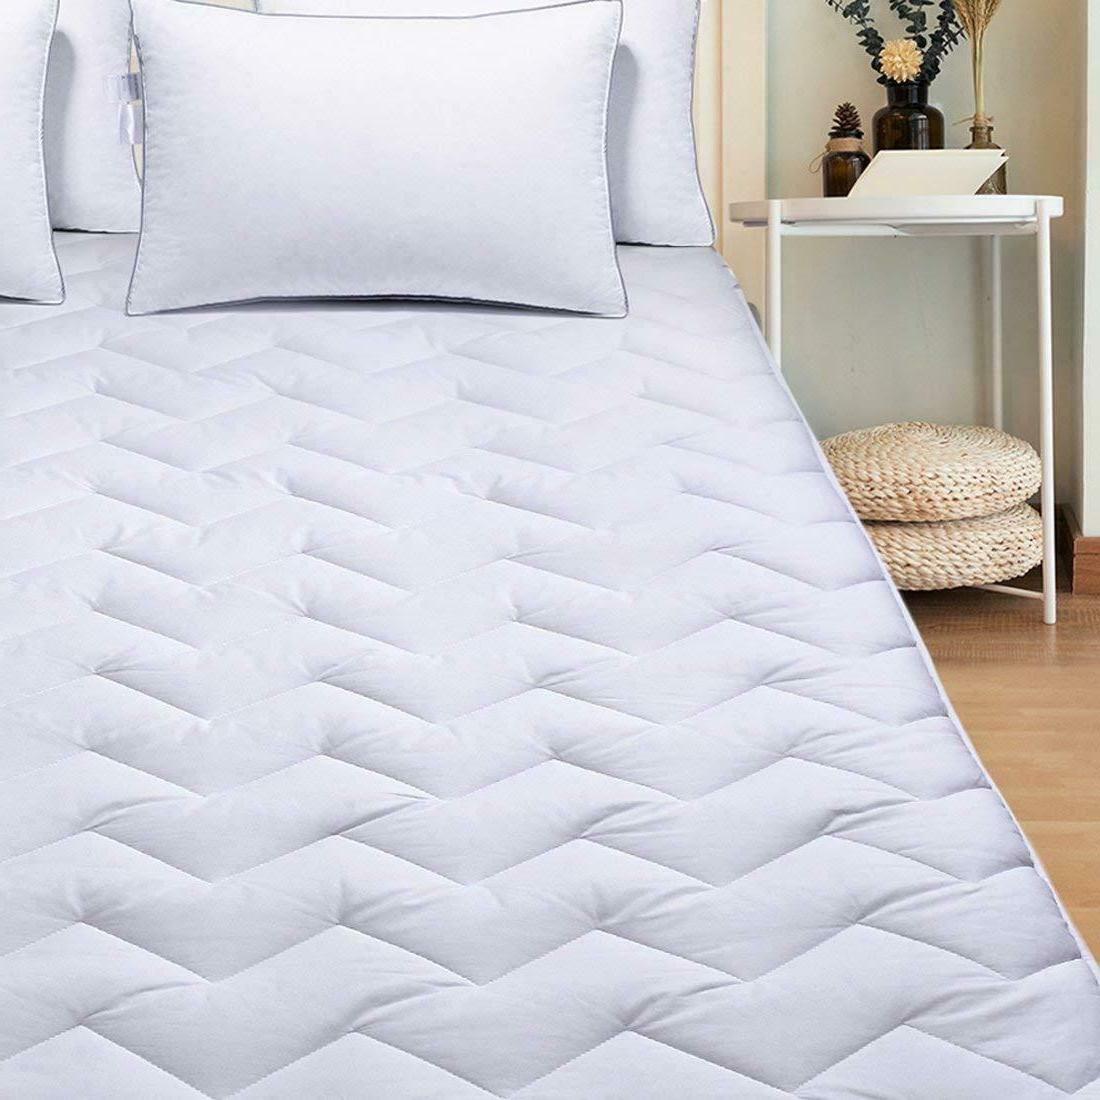 cotton mattress pad cover topper protector quilted